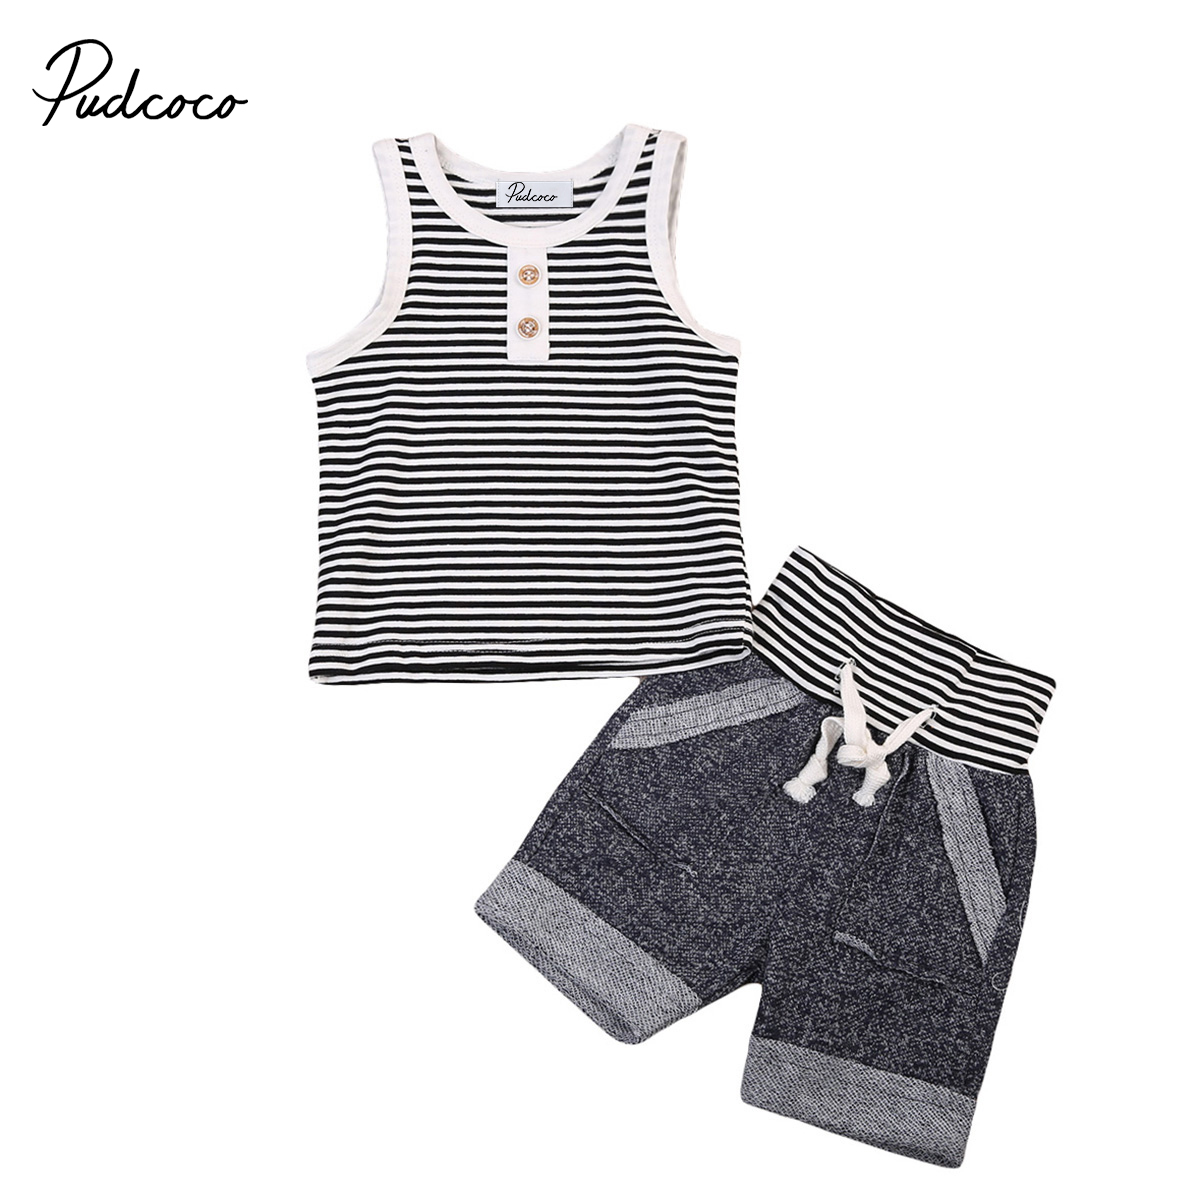 Summer Newborn Toddler Kids Boys Striped Vest Cotton Clothes T-Shirt Tops+ Rope Shorts Pants Outfits Set Two Piece 2pcs children outfit clothes kids baby girl off shoulder cotton ruffled sleeve tops striped t shirt blue denim jeans sunsuit set